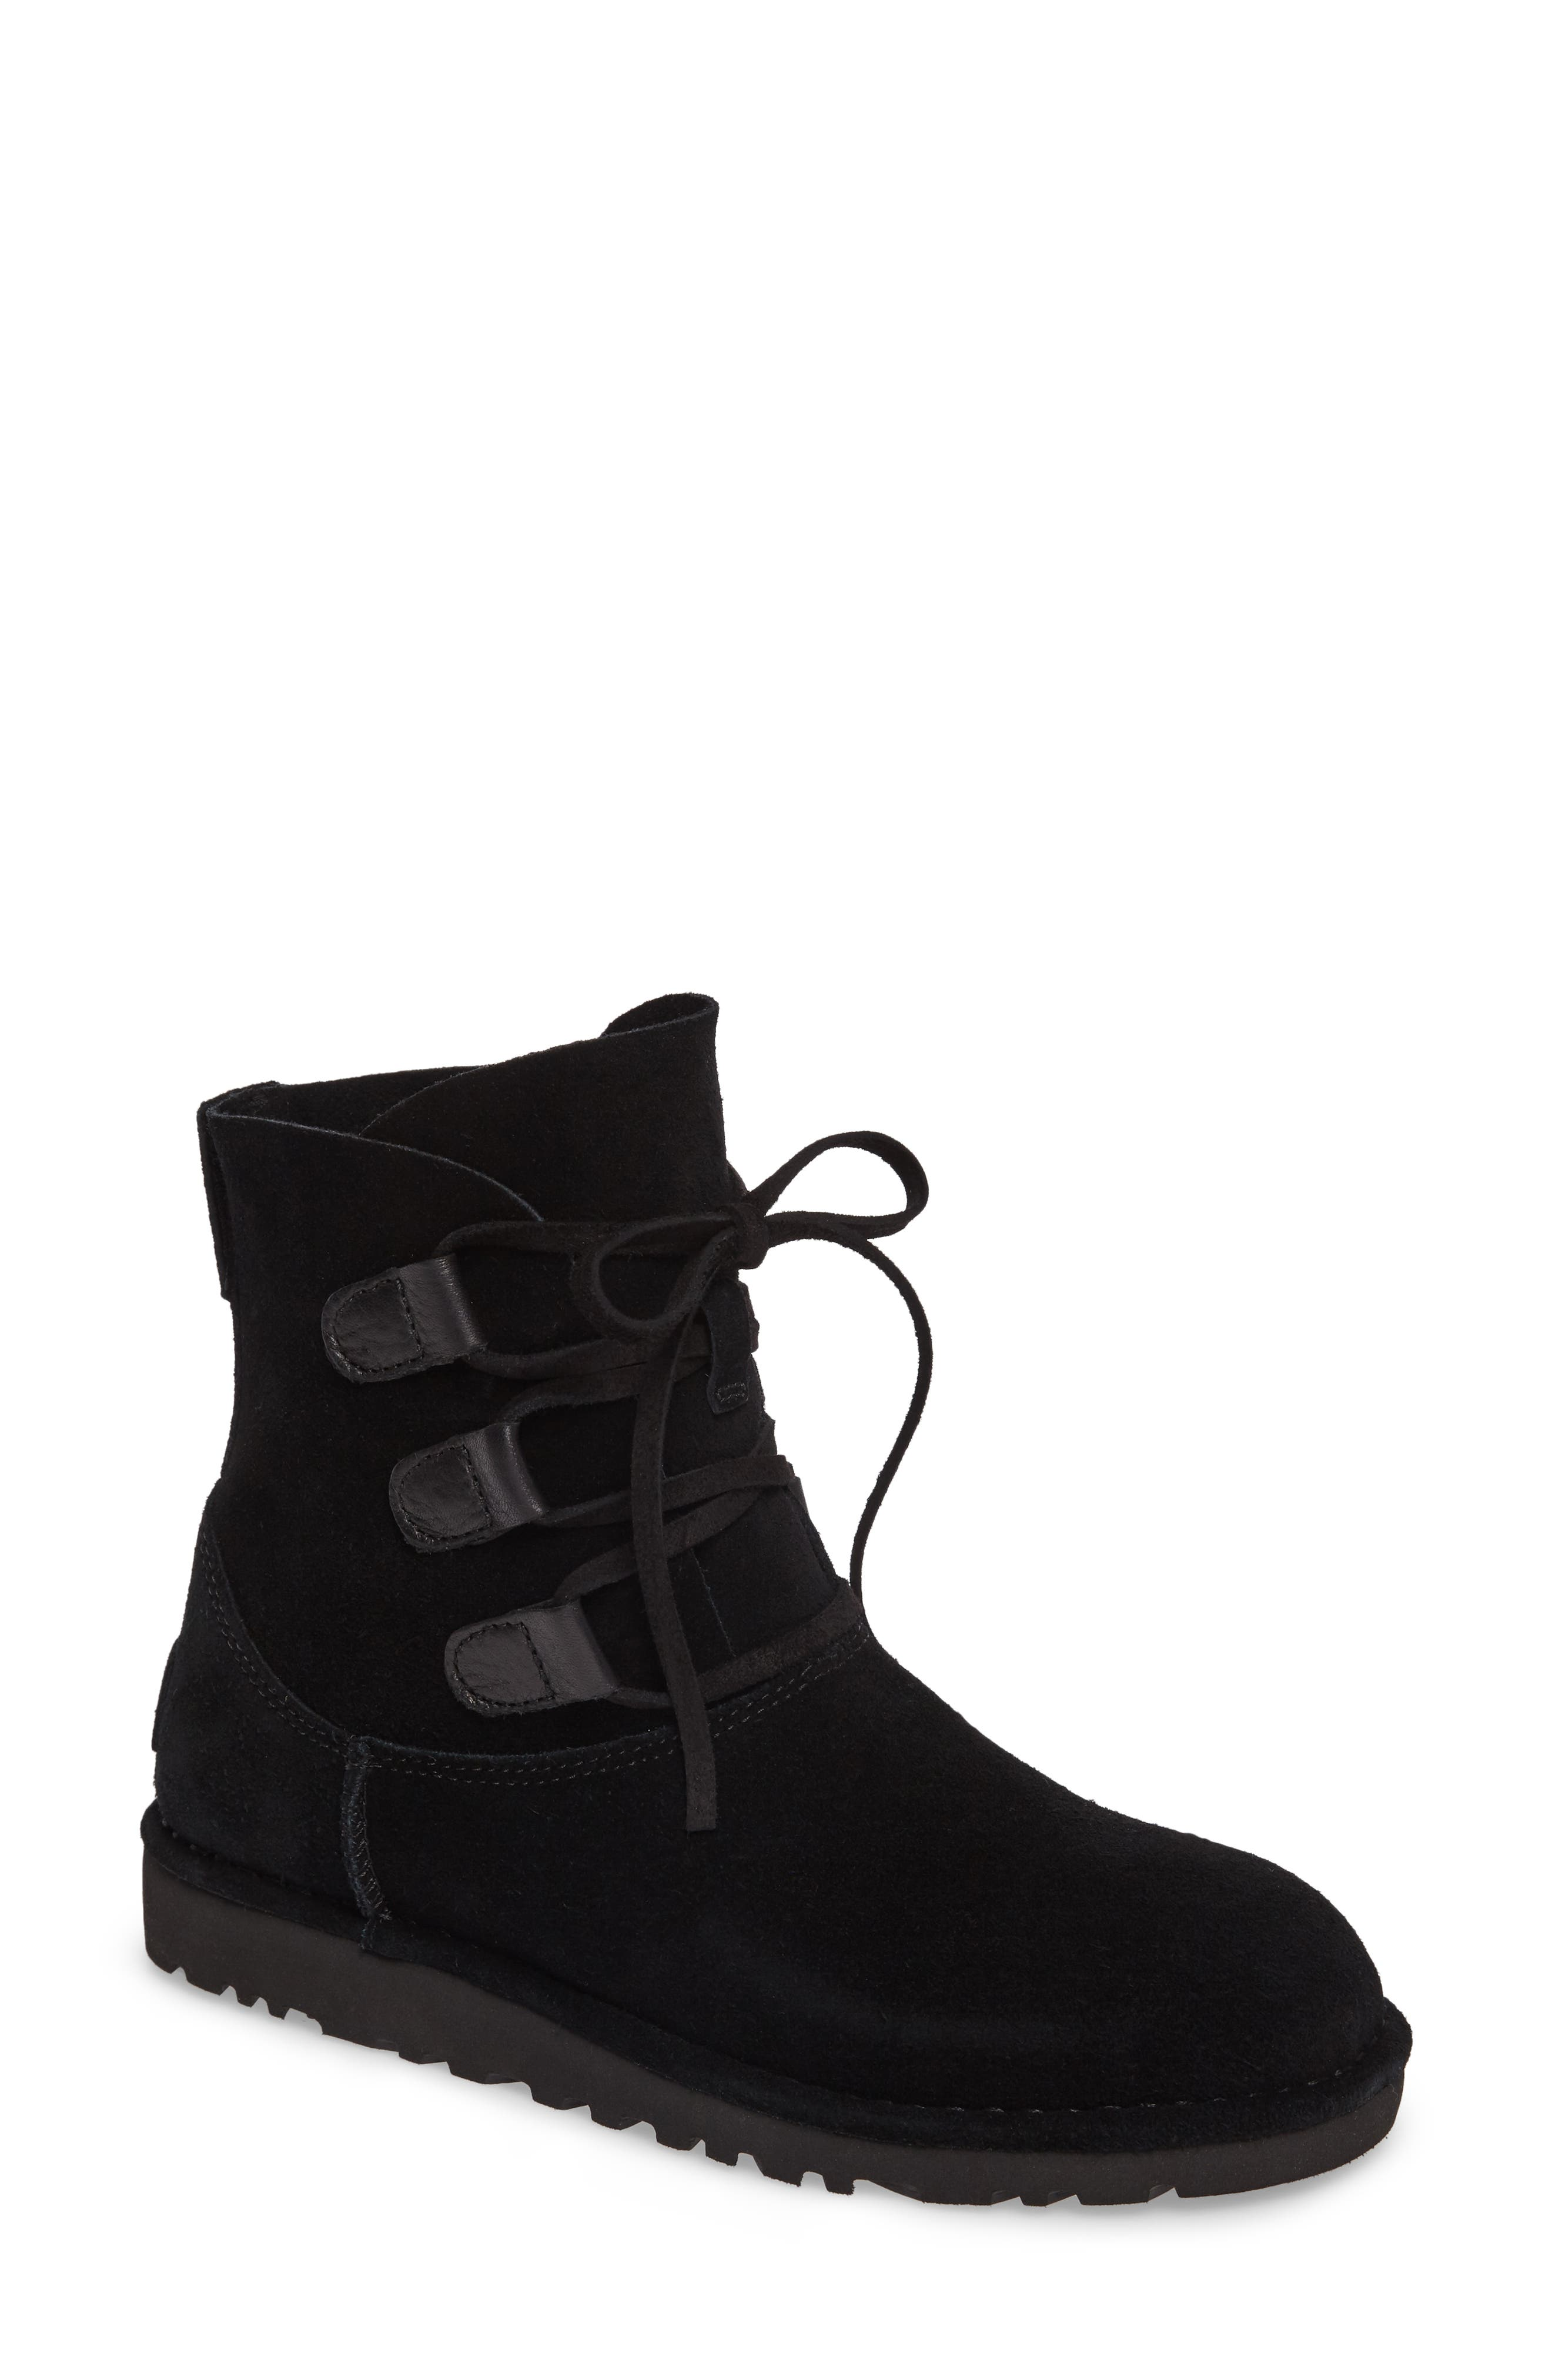 Elvi Short Boot,                             Main thumbnail 1, color,